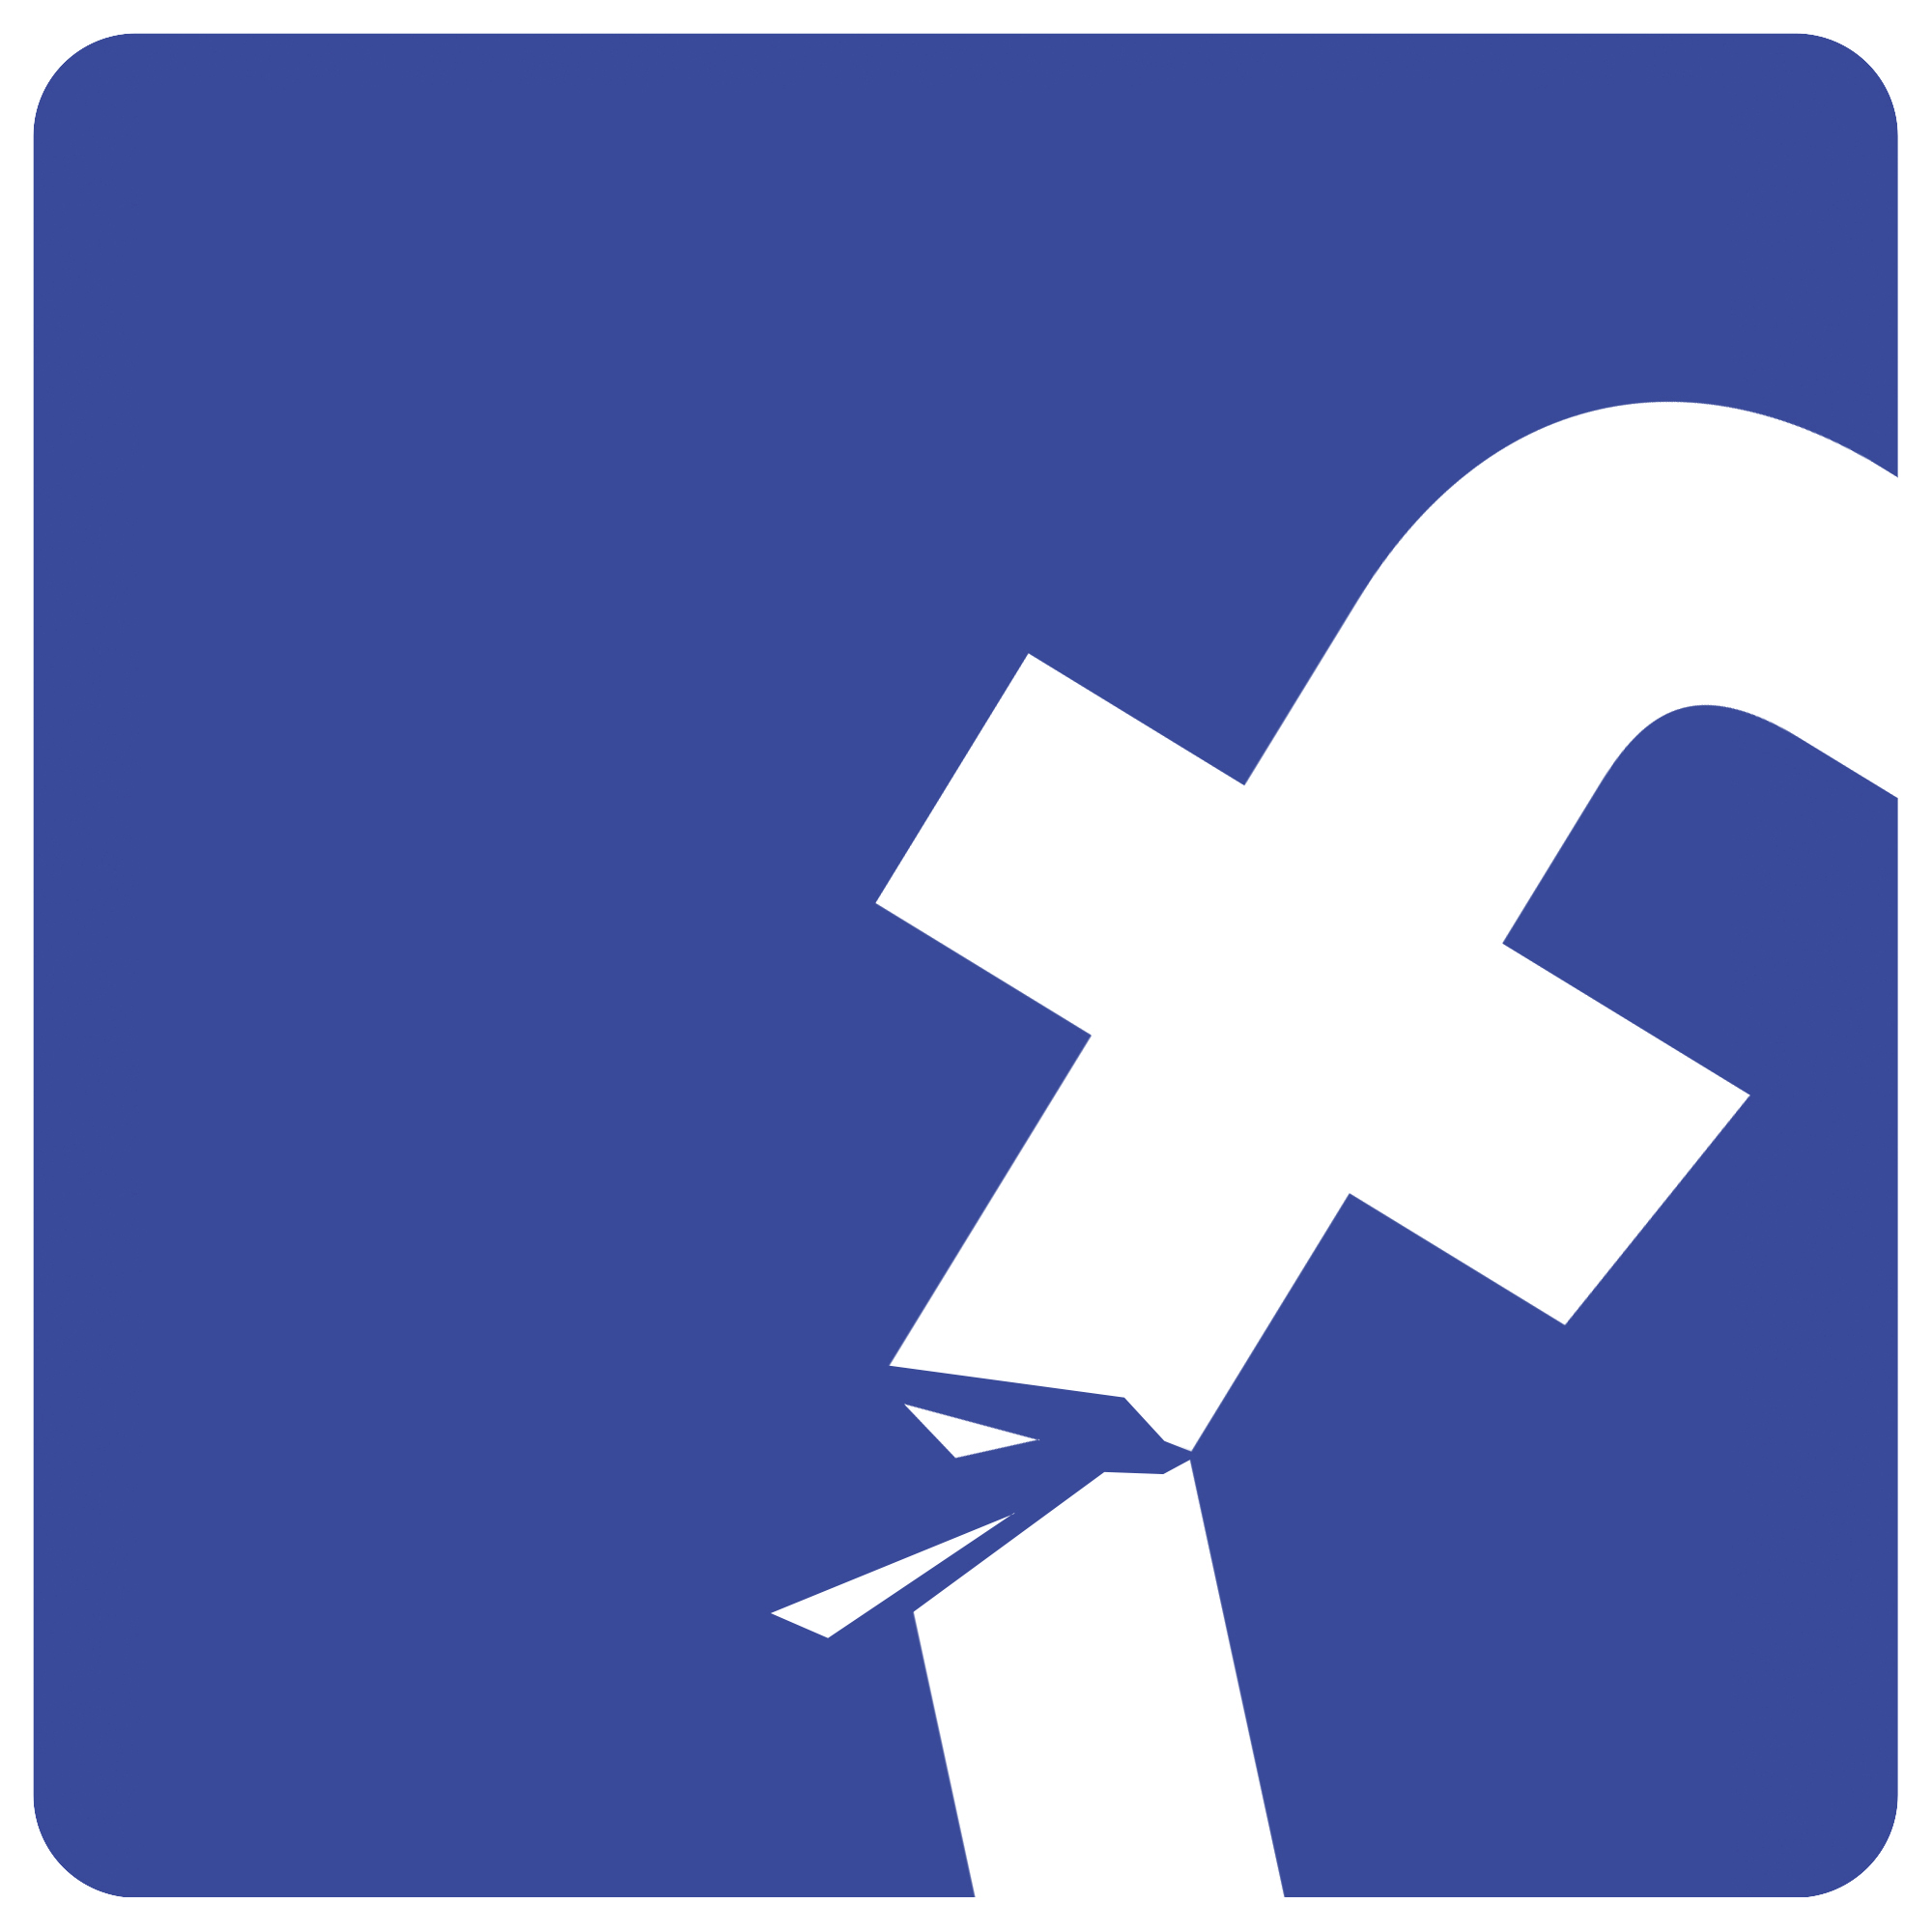 Broken Facebook logo to illustrate story about quitting Facebook. MUST CREDIT: The Washington Post